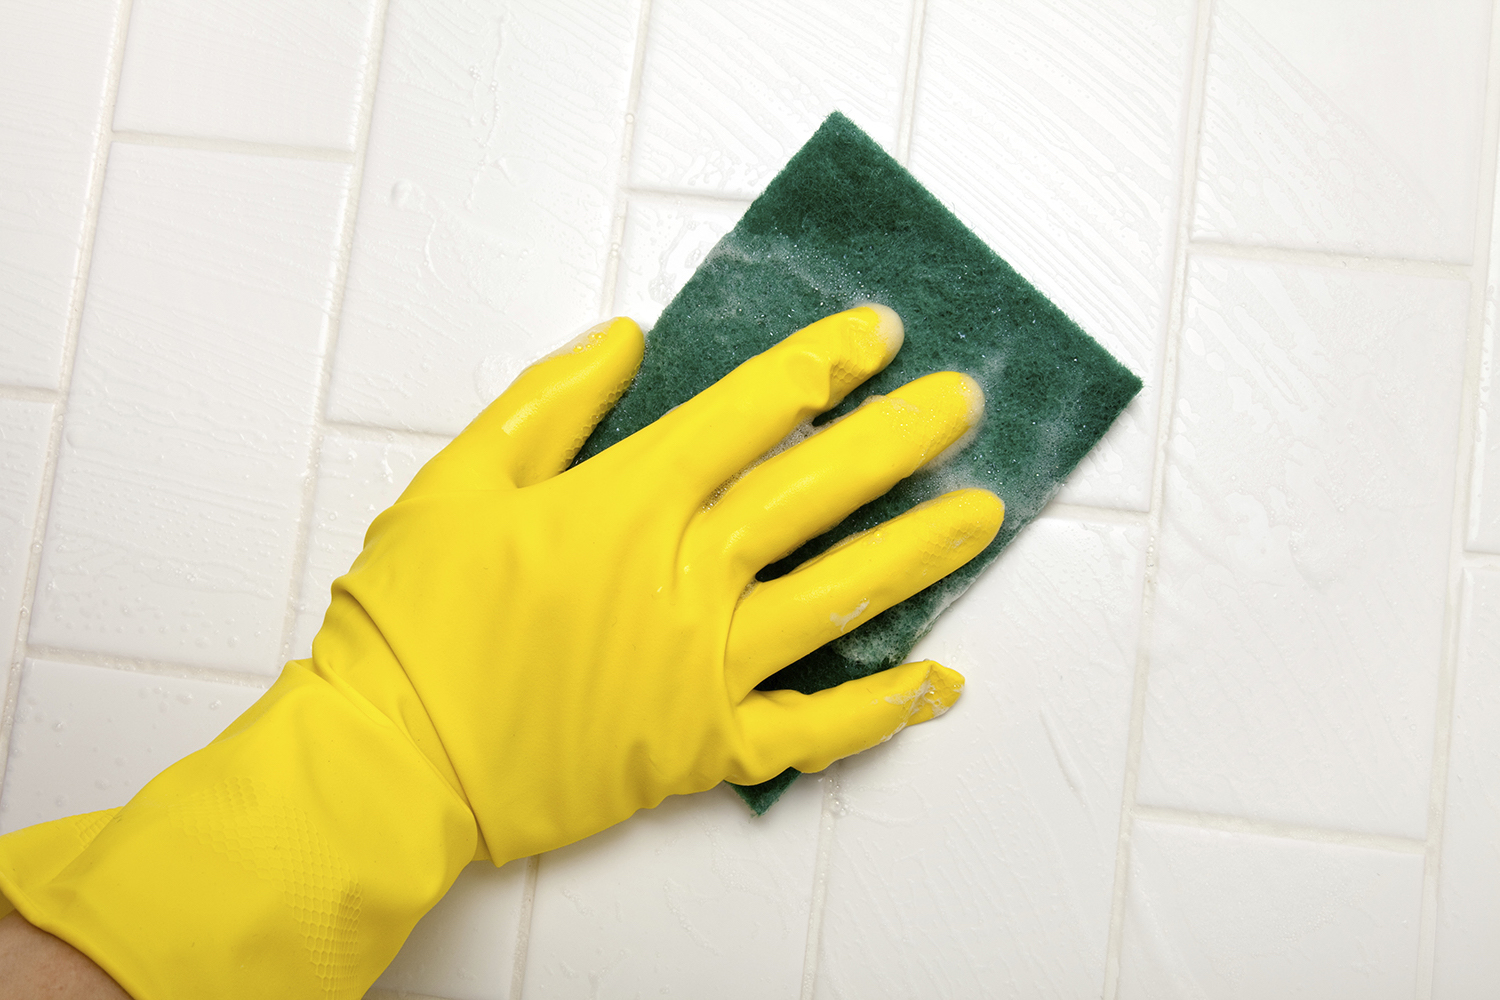 Yellow gloved hand scrubbing tile with a sponge